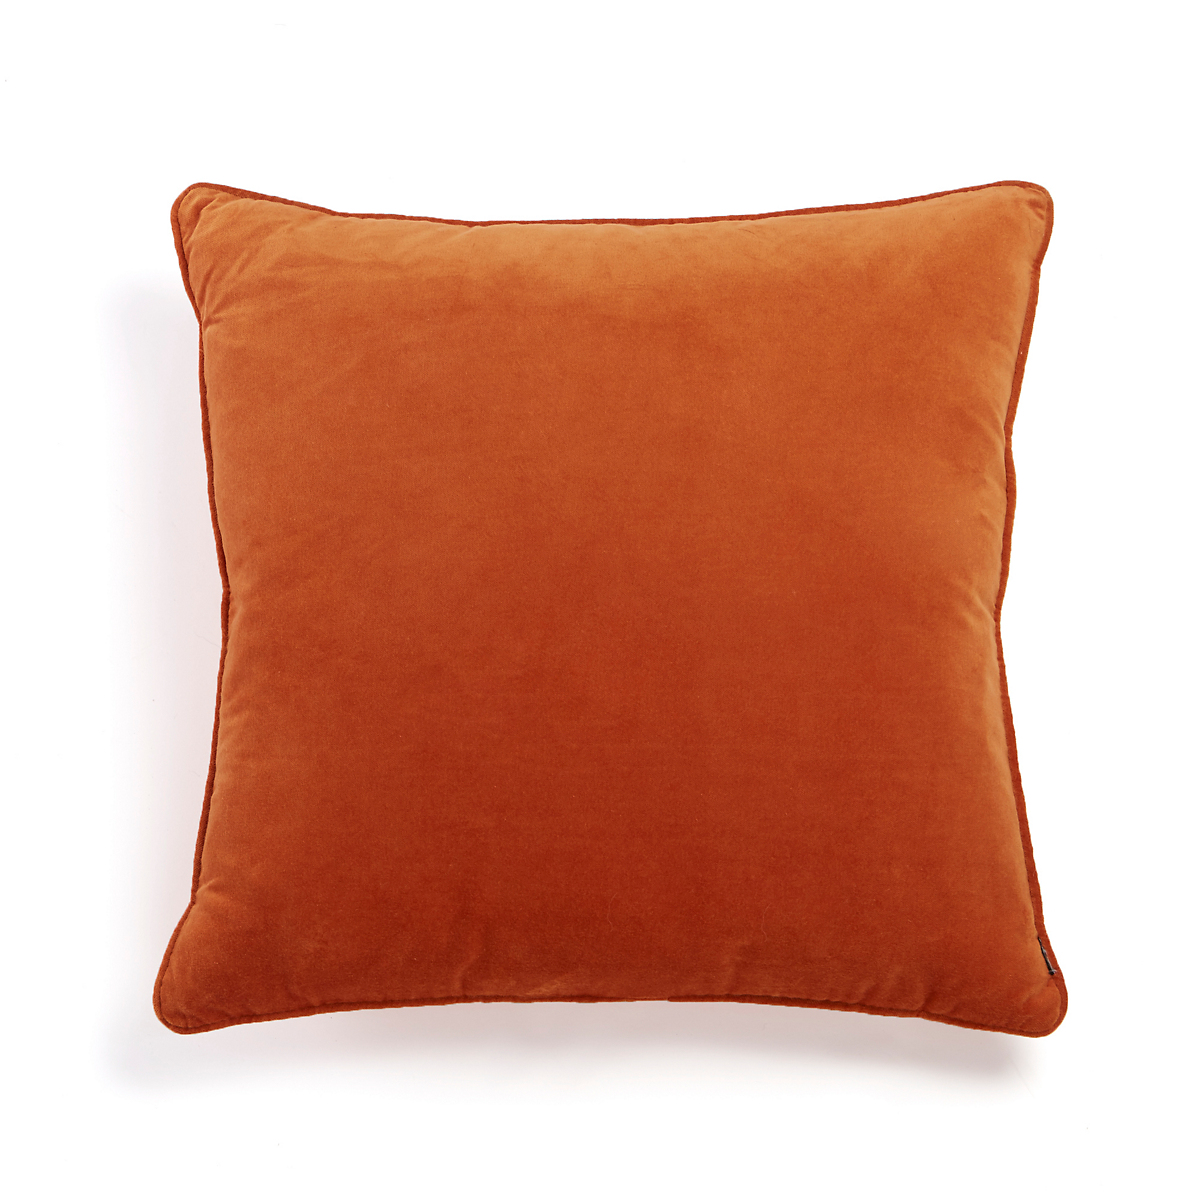 Lowell Velvet Pillows